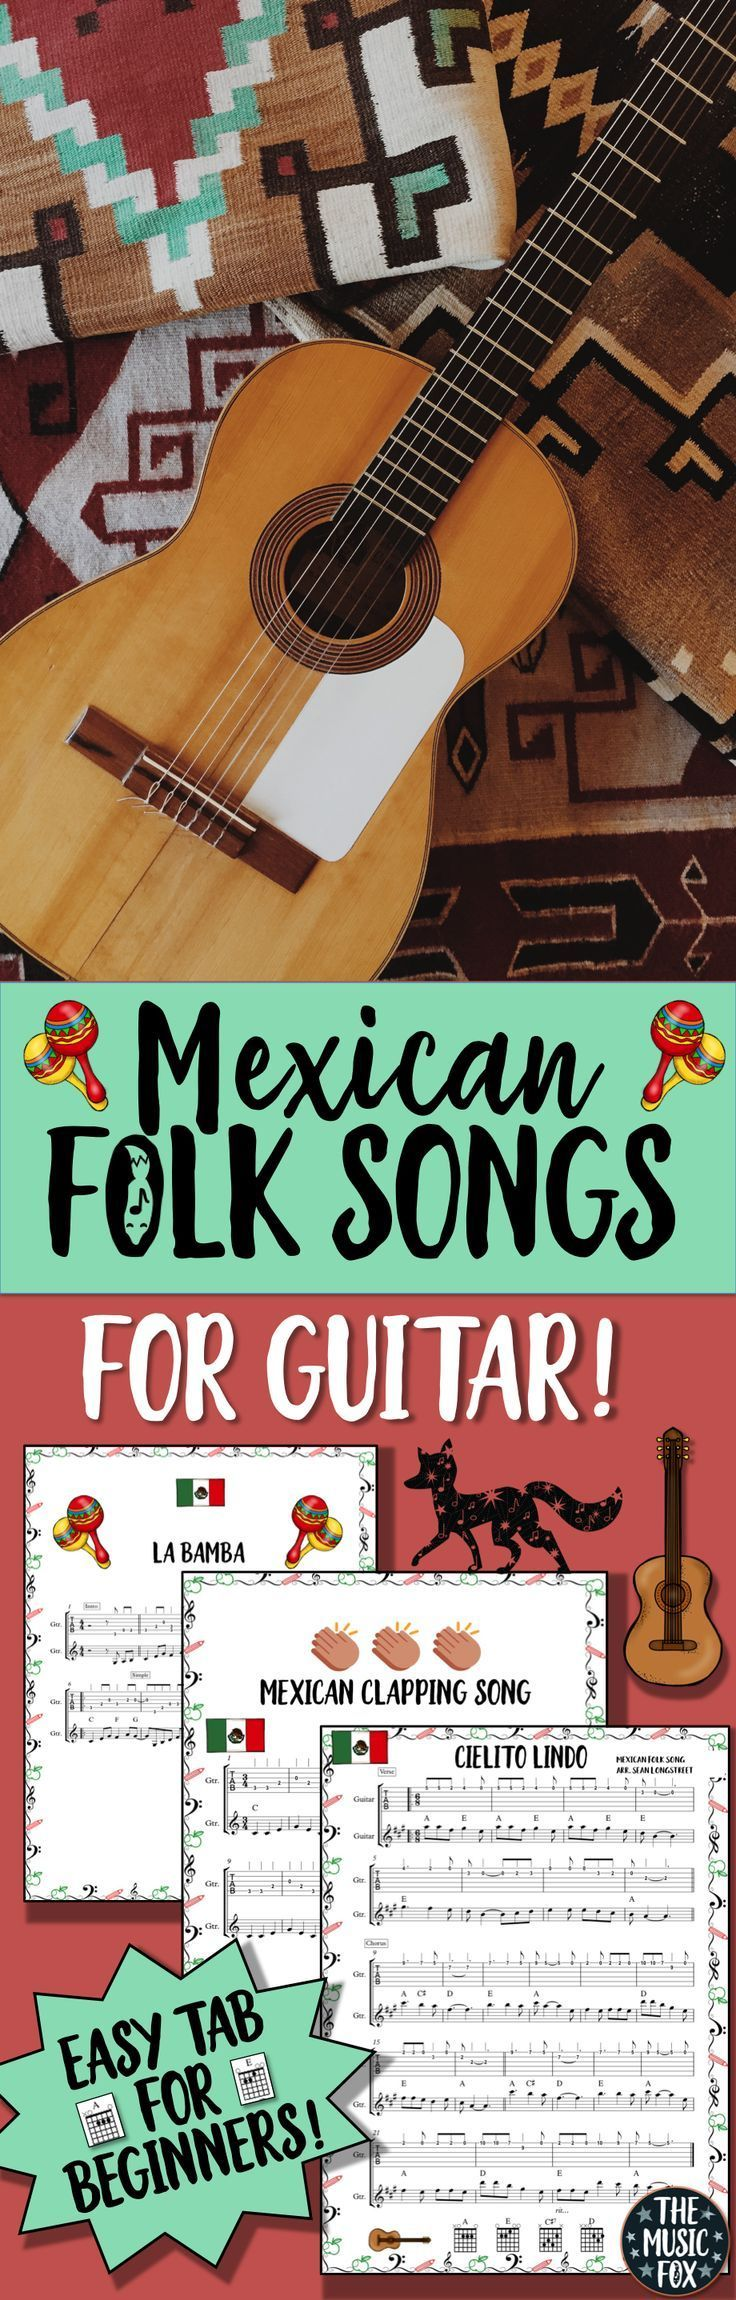 "This resource includes the sheet music, chords, and guitar tablature for three Mexican folk songs: ""Cielito Lindo""""The Mexican Clapping Song"" and ""La Bamba."" Great for beginners but flexible to challenge more advanced players as well. Aligned with the current NATIONAL CORE ARTS STANDARDS!"